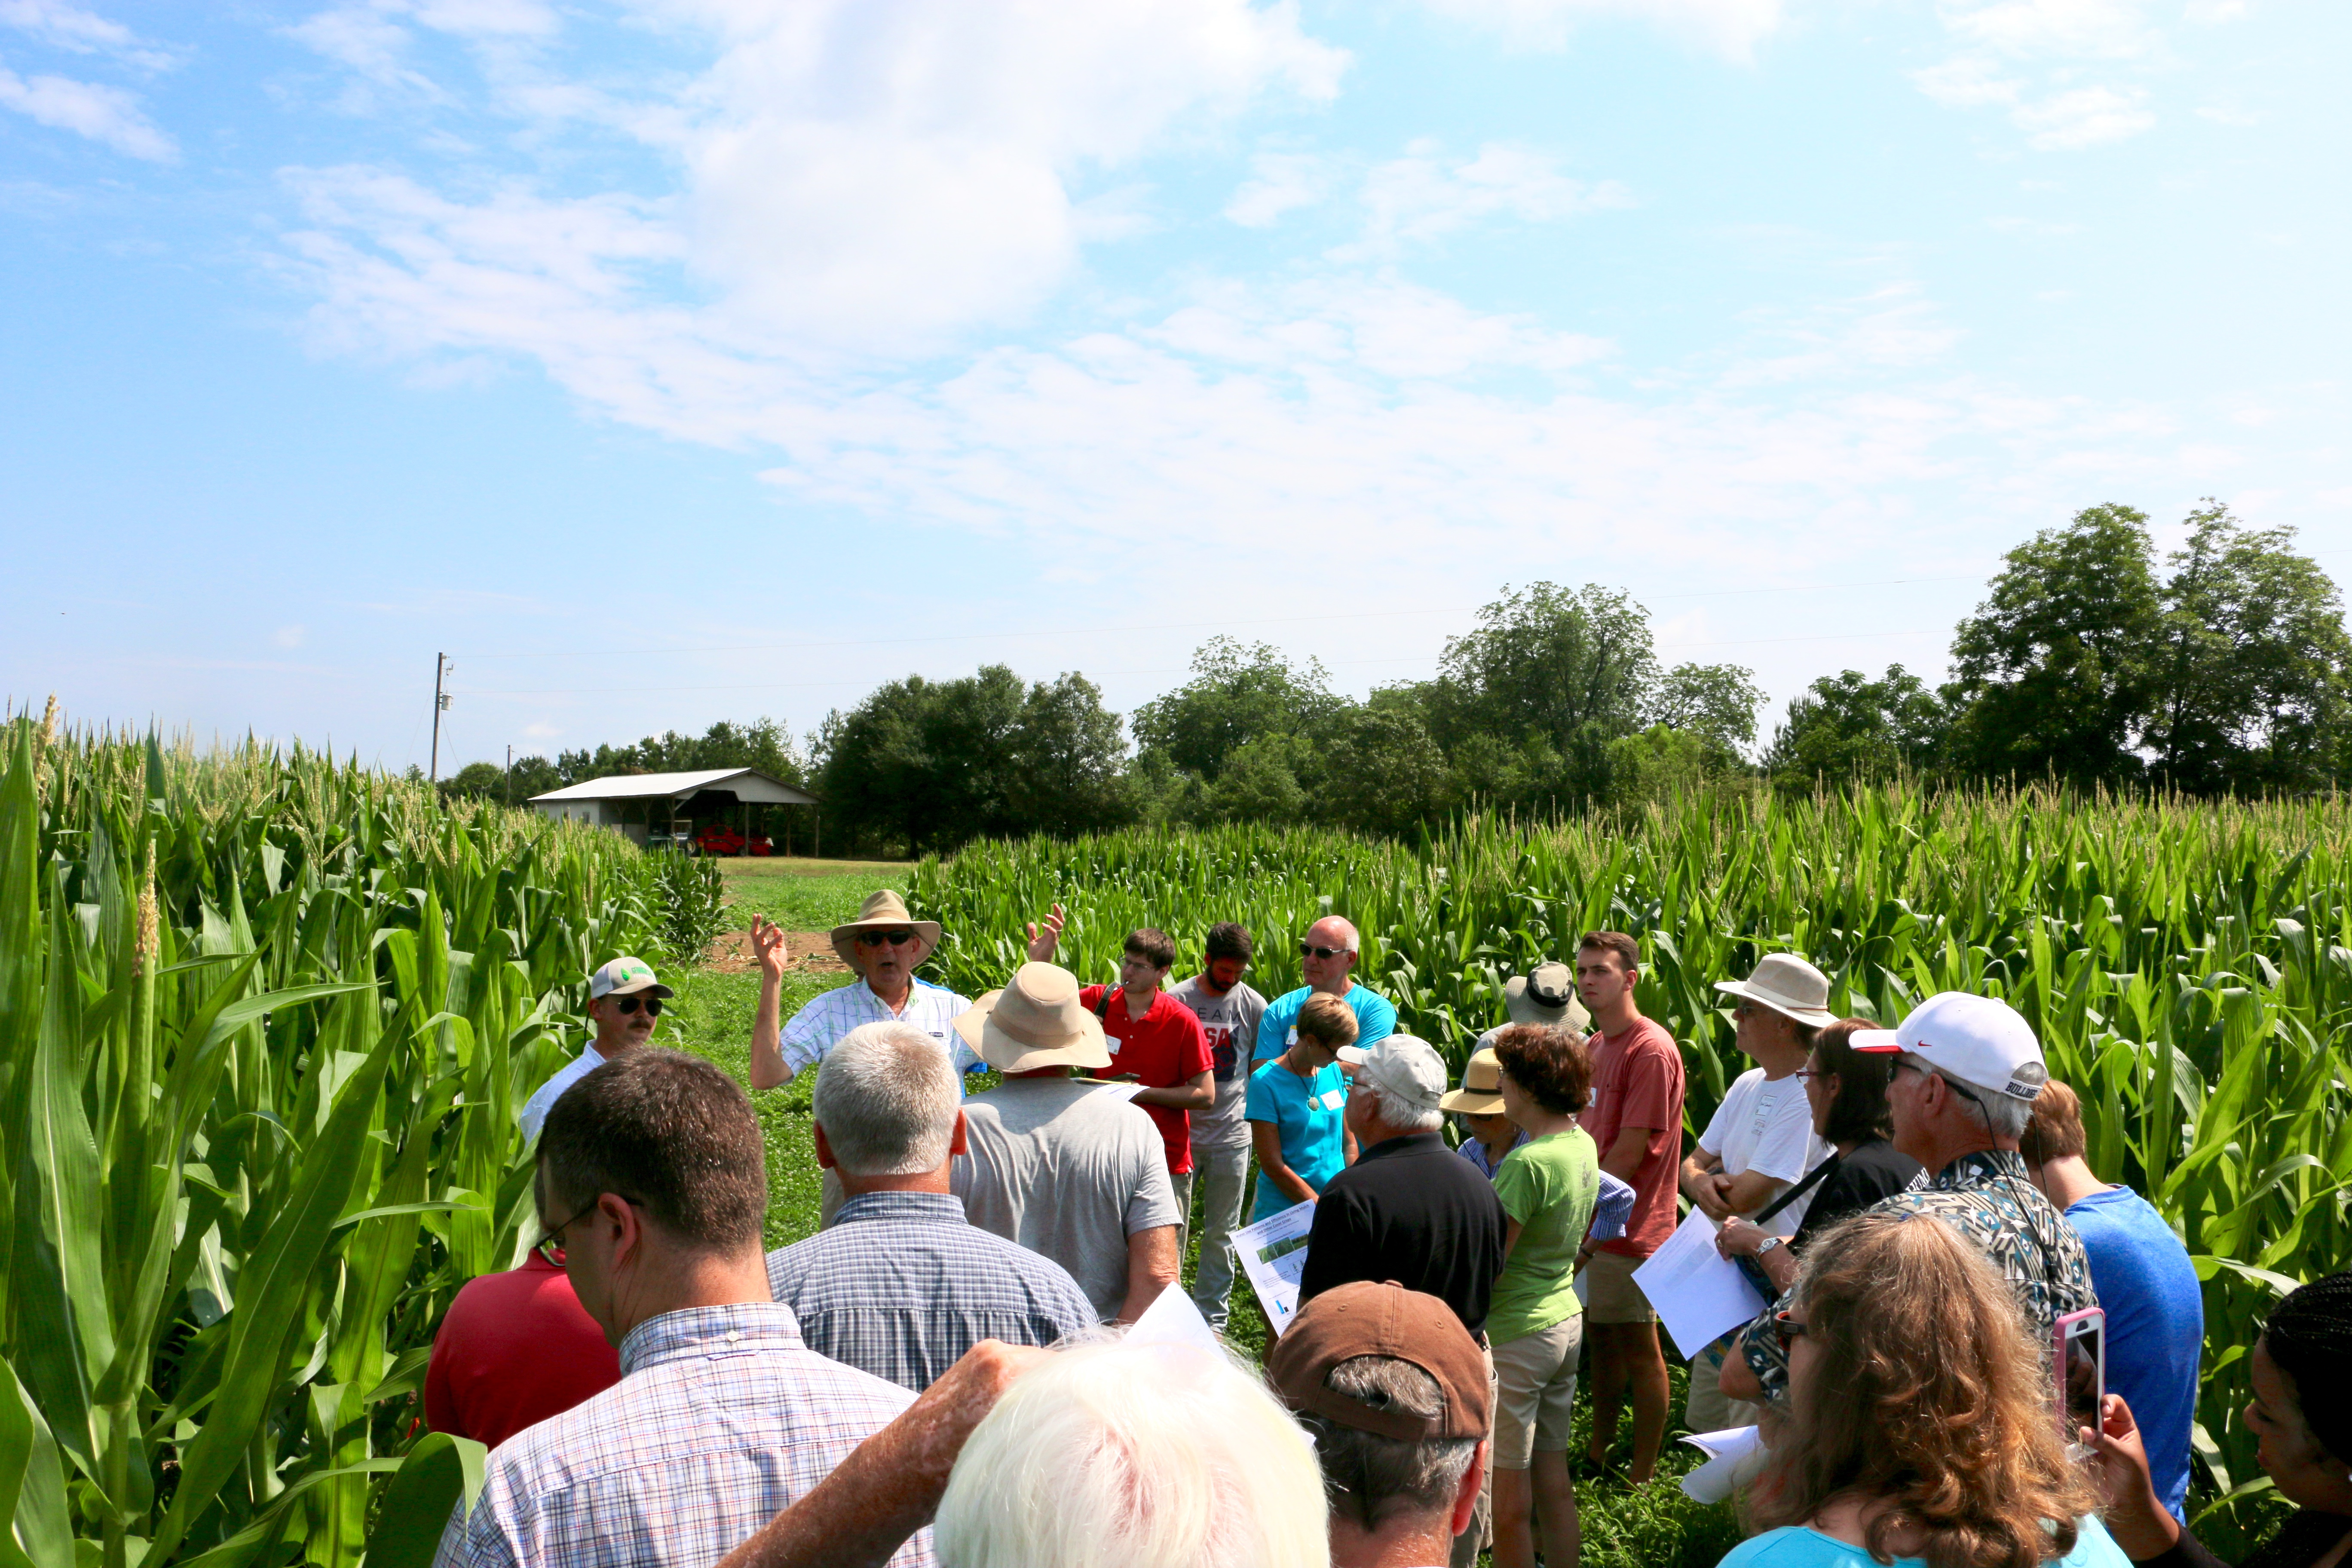 The staff at the University of Georgia's J. Phil Campbell Sr. Research and Education Center will host their annual corn boil and farm tour on June 26 from 9:30 a.m. to 1 p.m. Tours of the farm will be followed by a community corn boil.